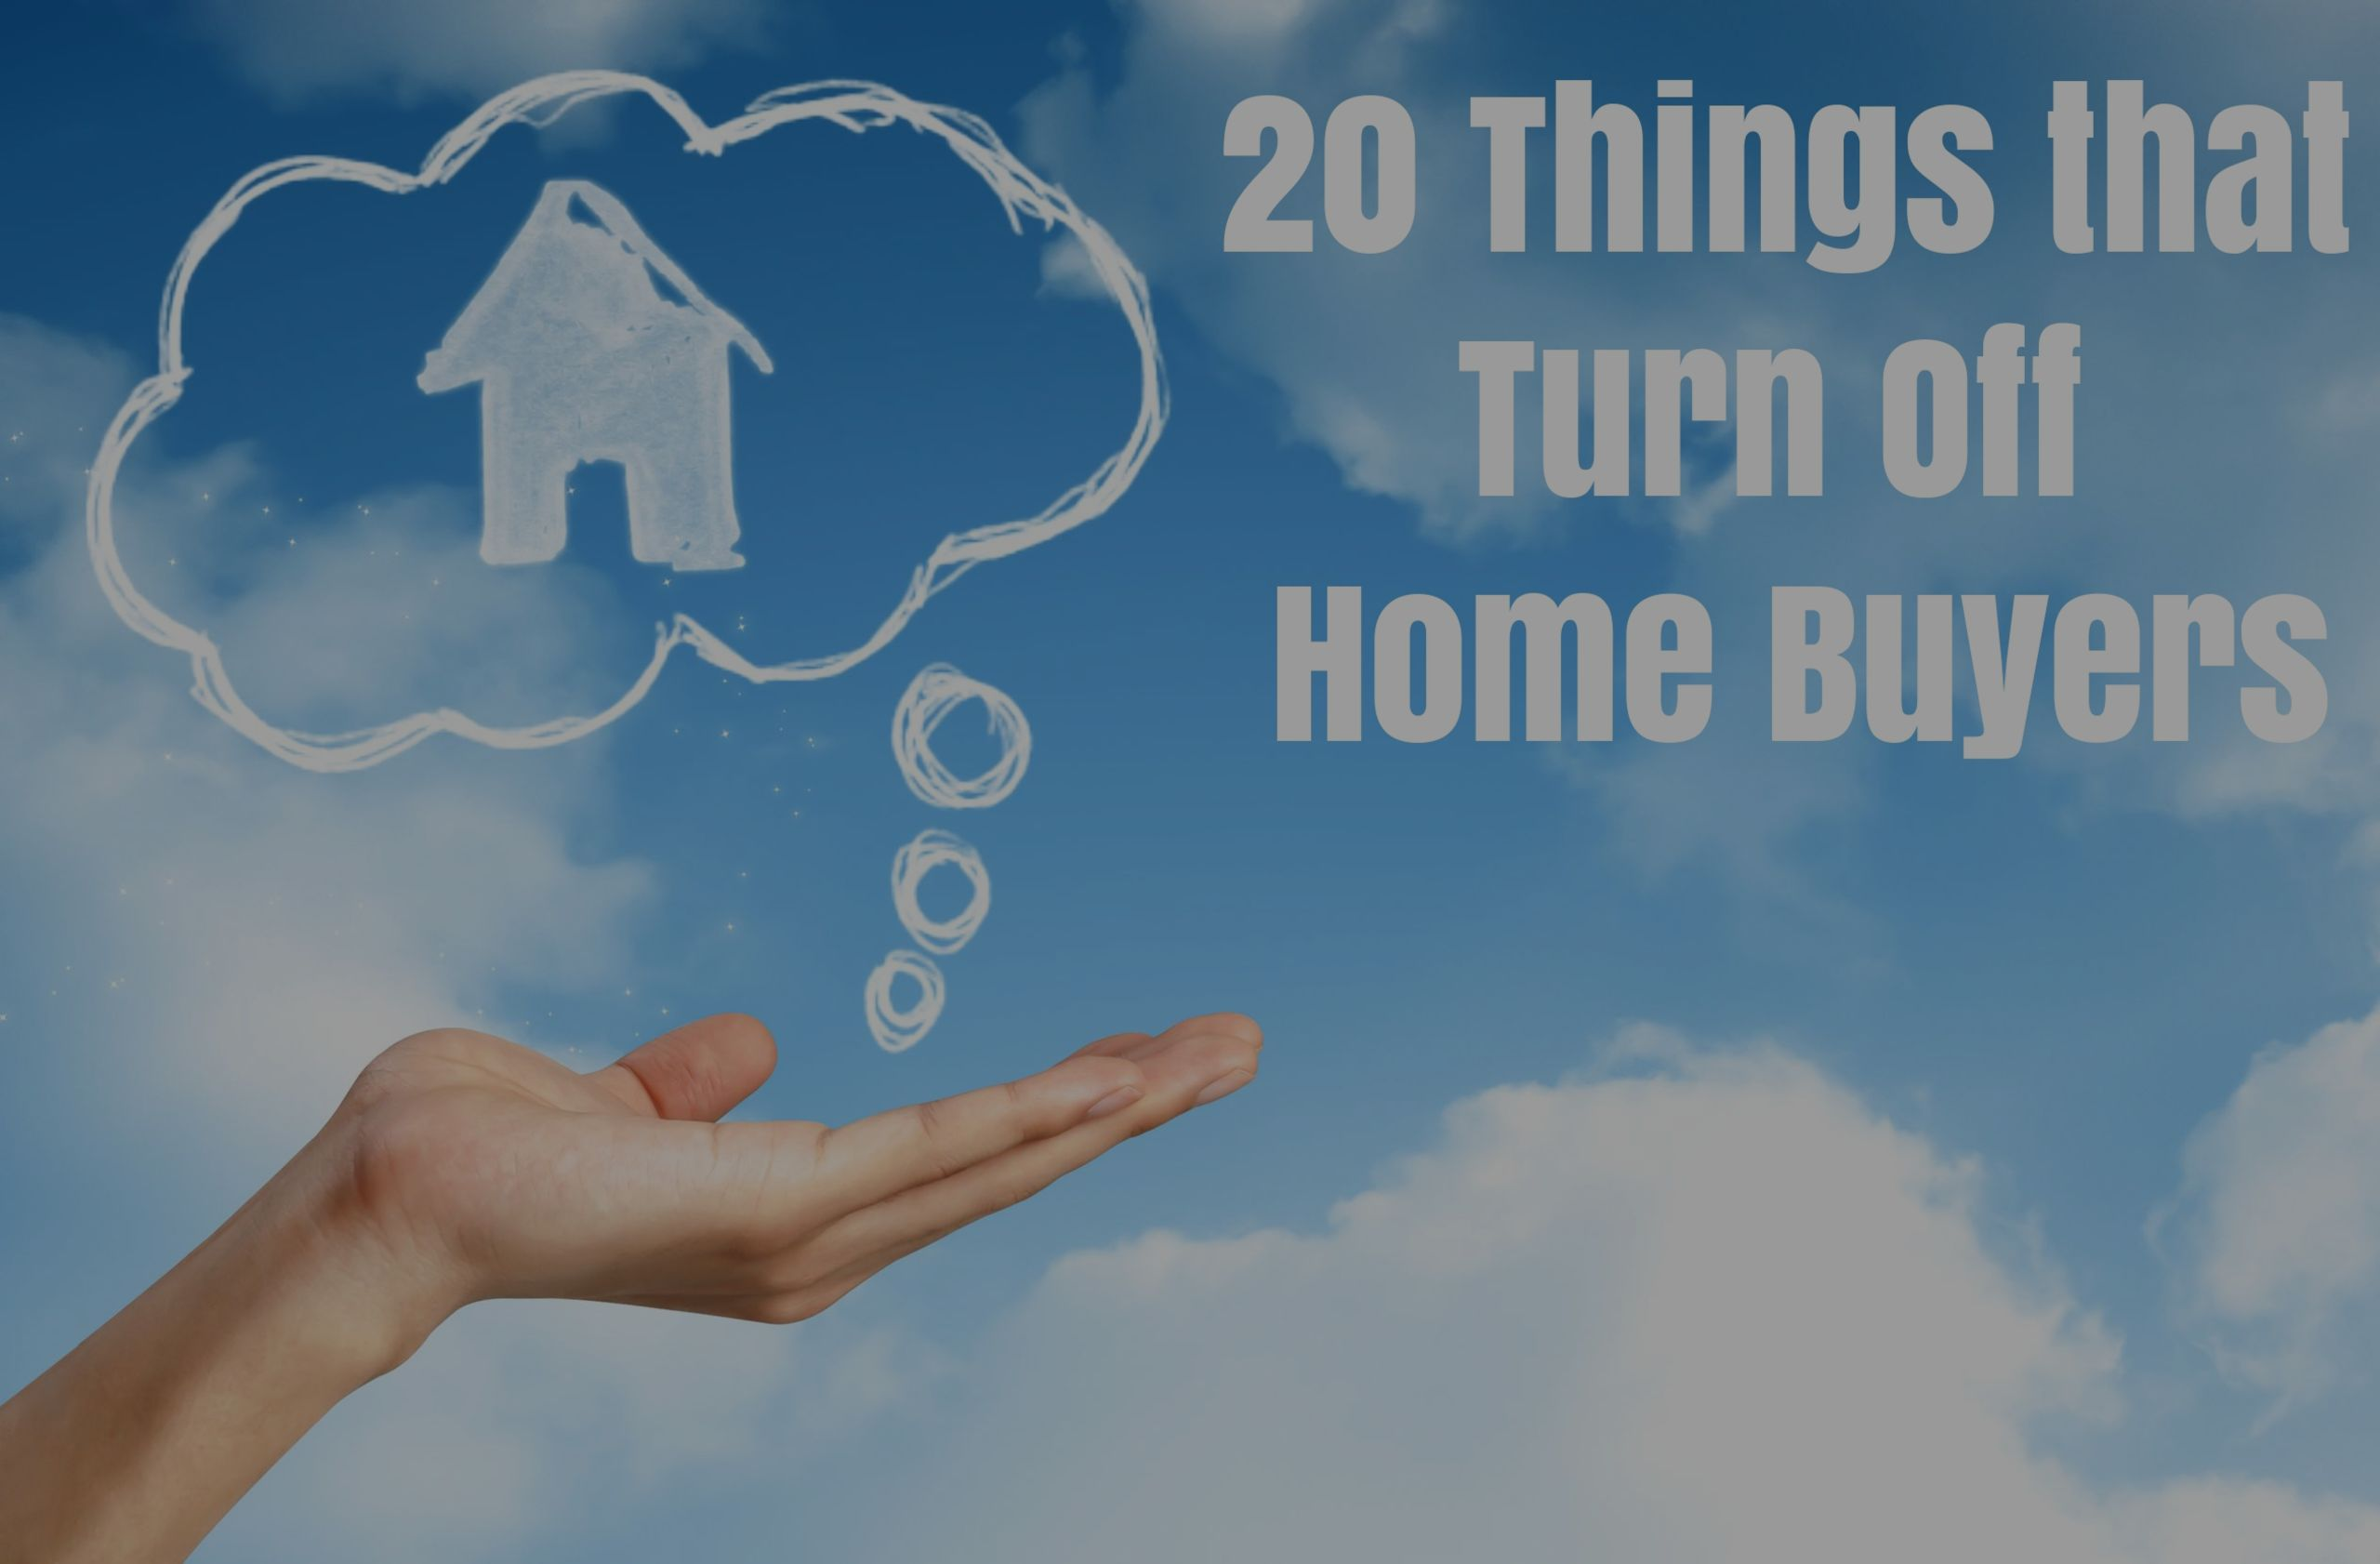 20 Things that Turn Off Home Buyers